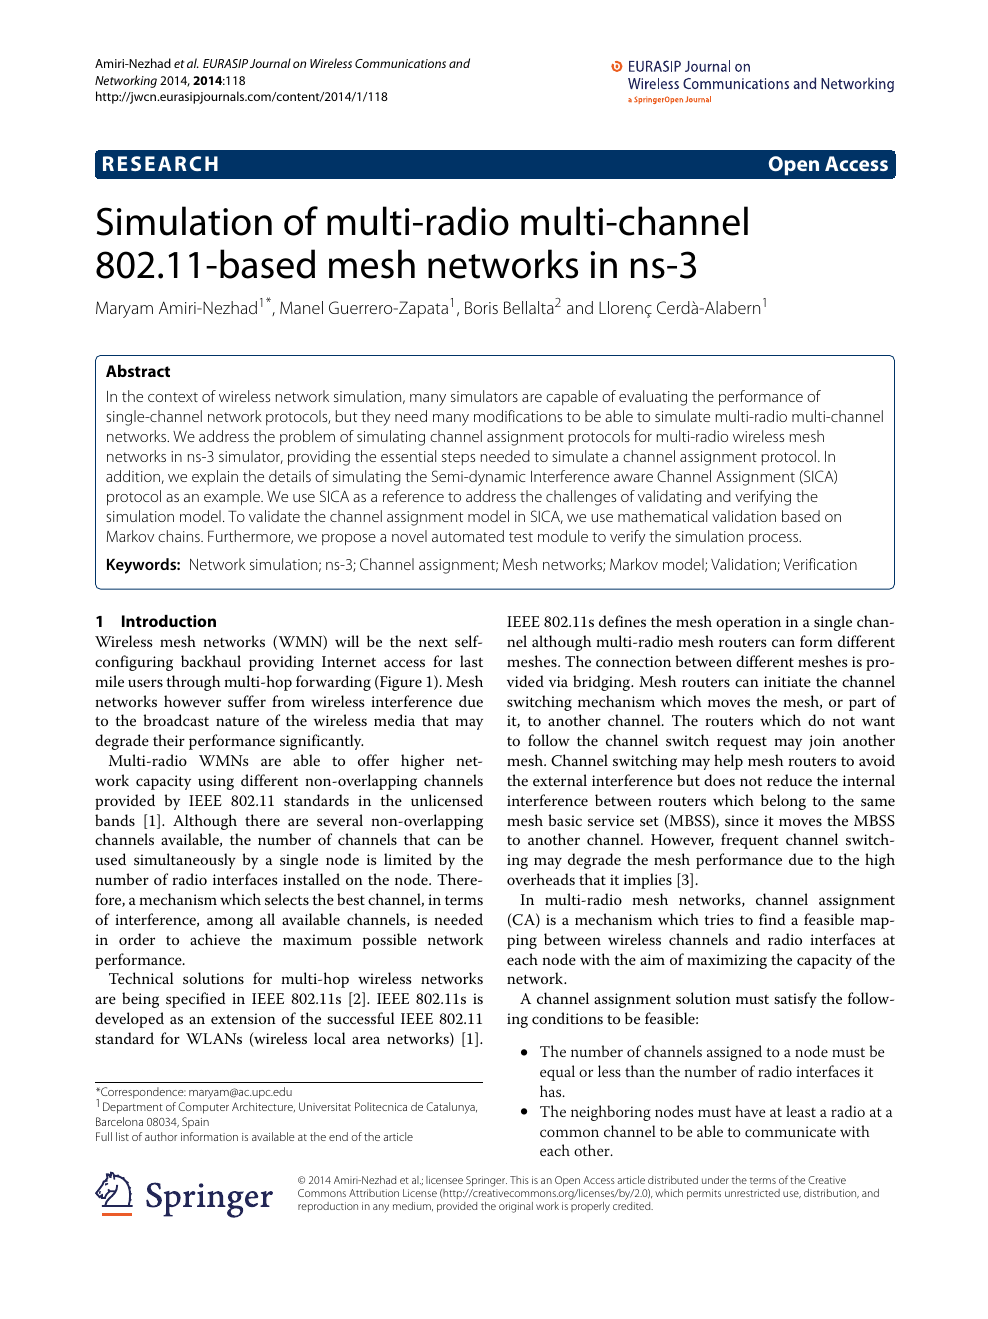 Simulation of multi-radio multi-channel 802 11-based mesh